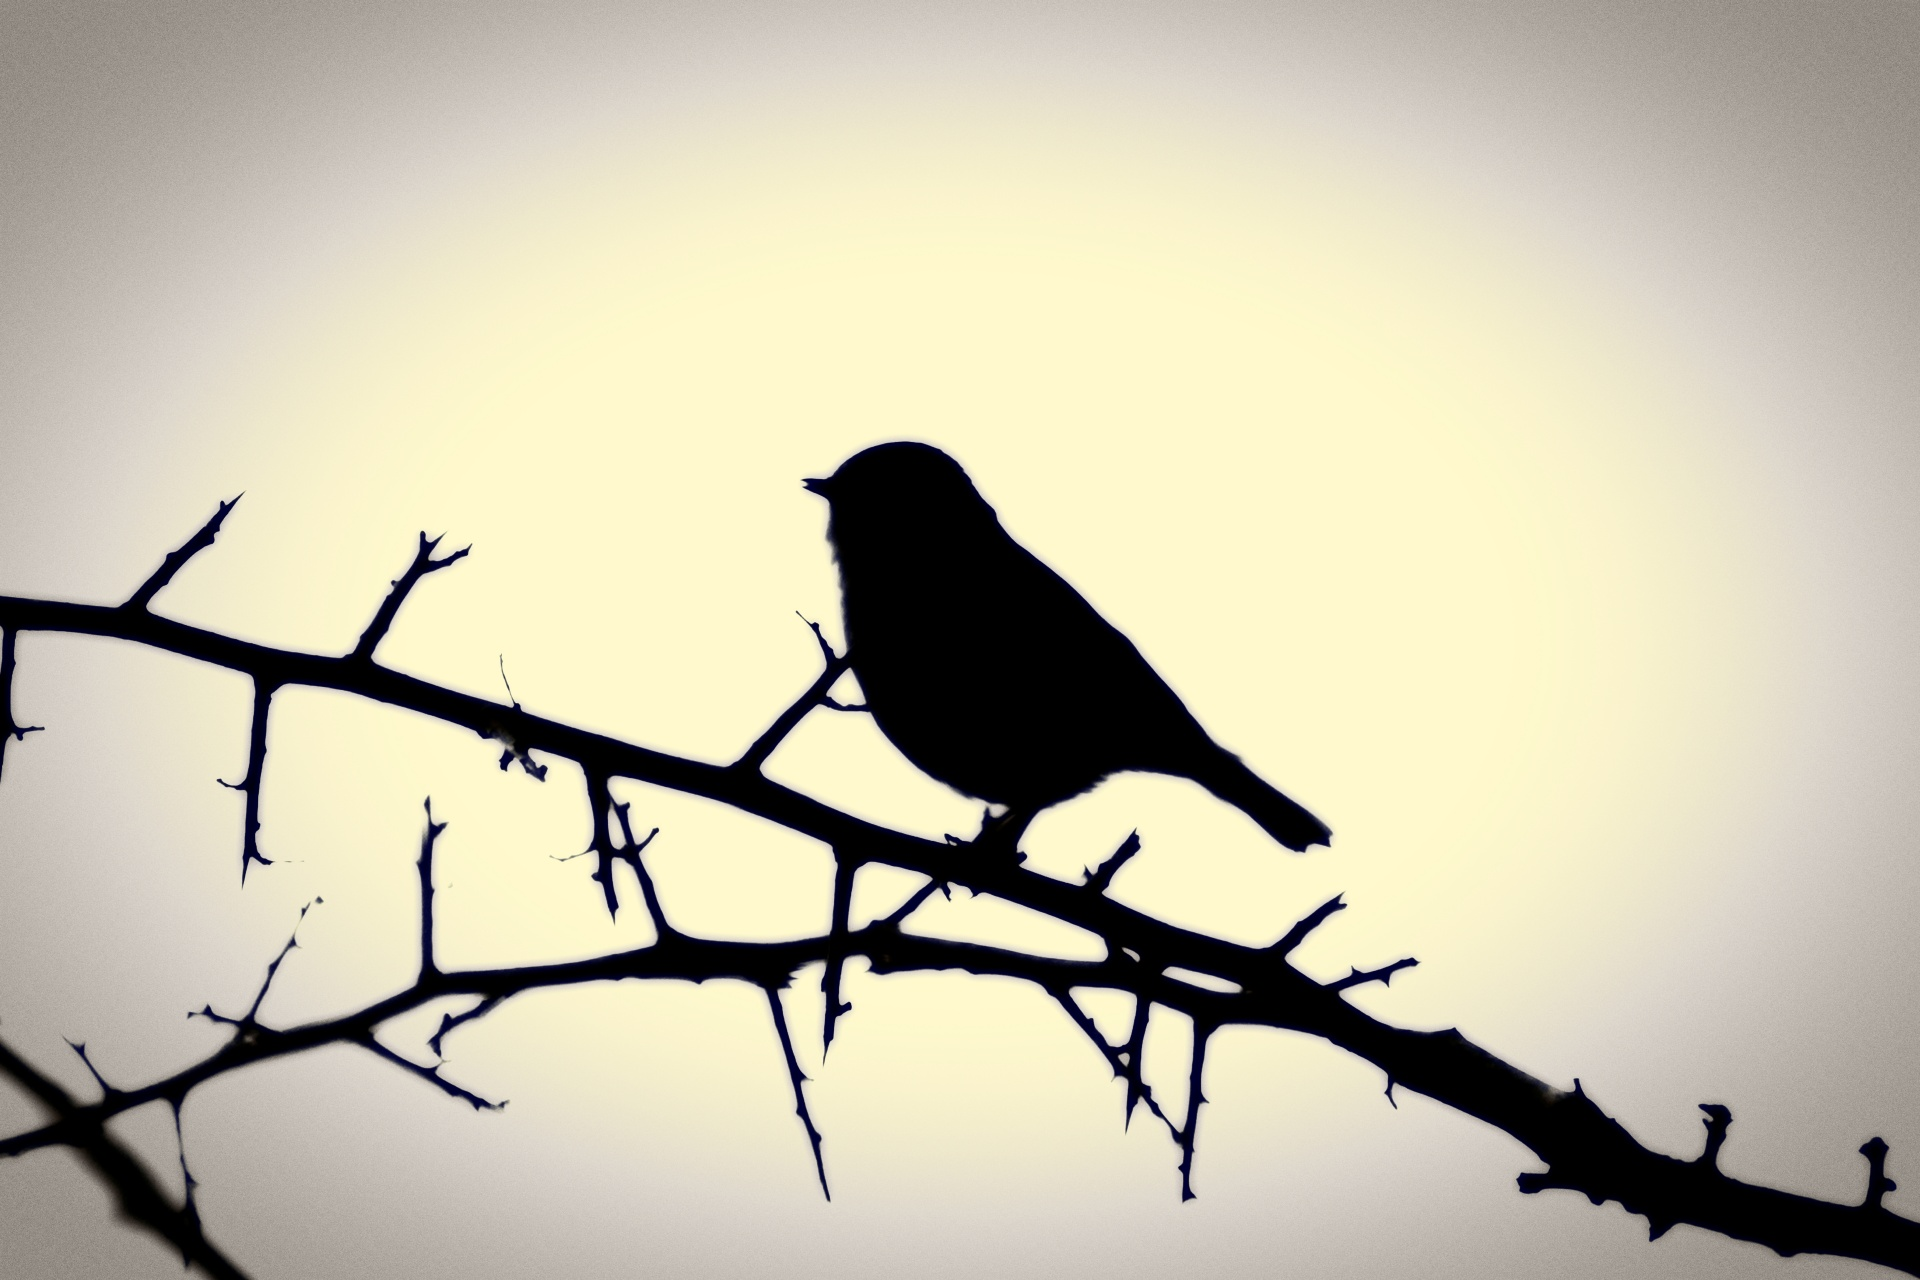 1920x1280 Silhouette Of A Bird On A Branch Free Stock Photo